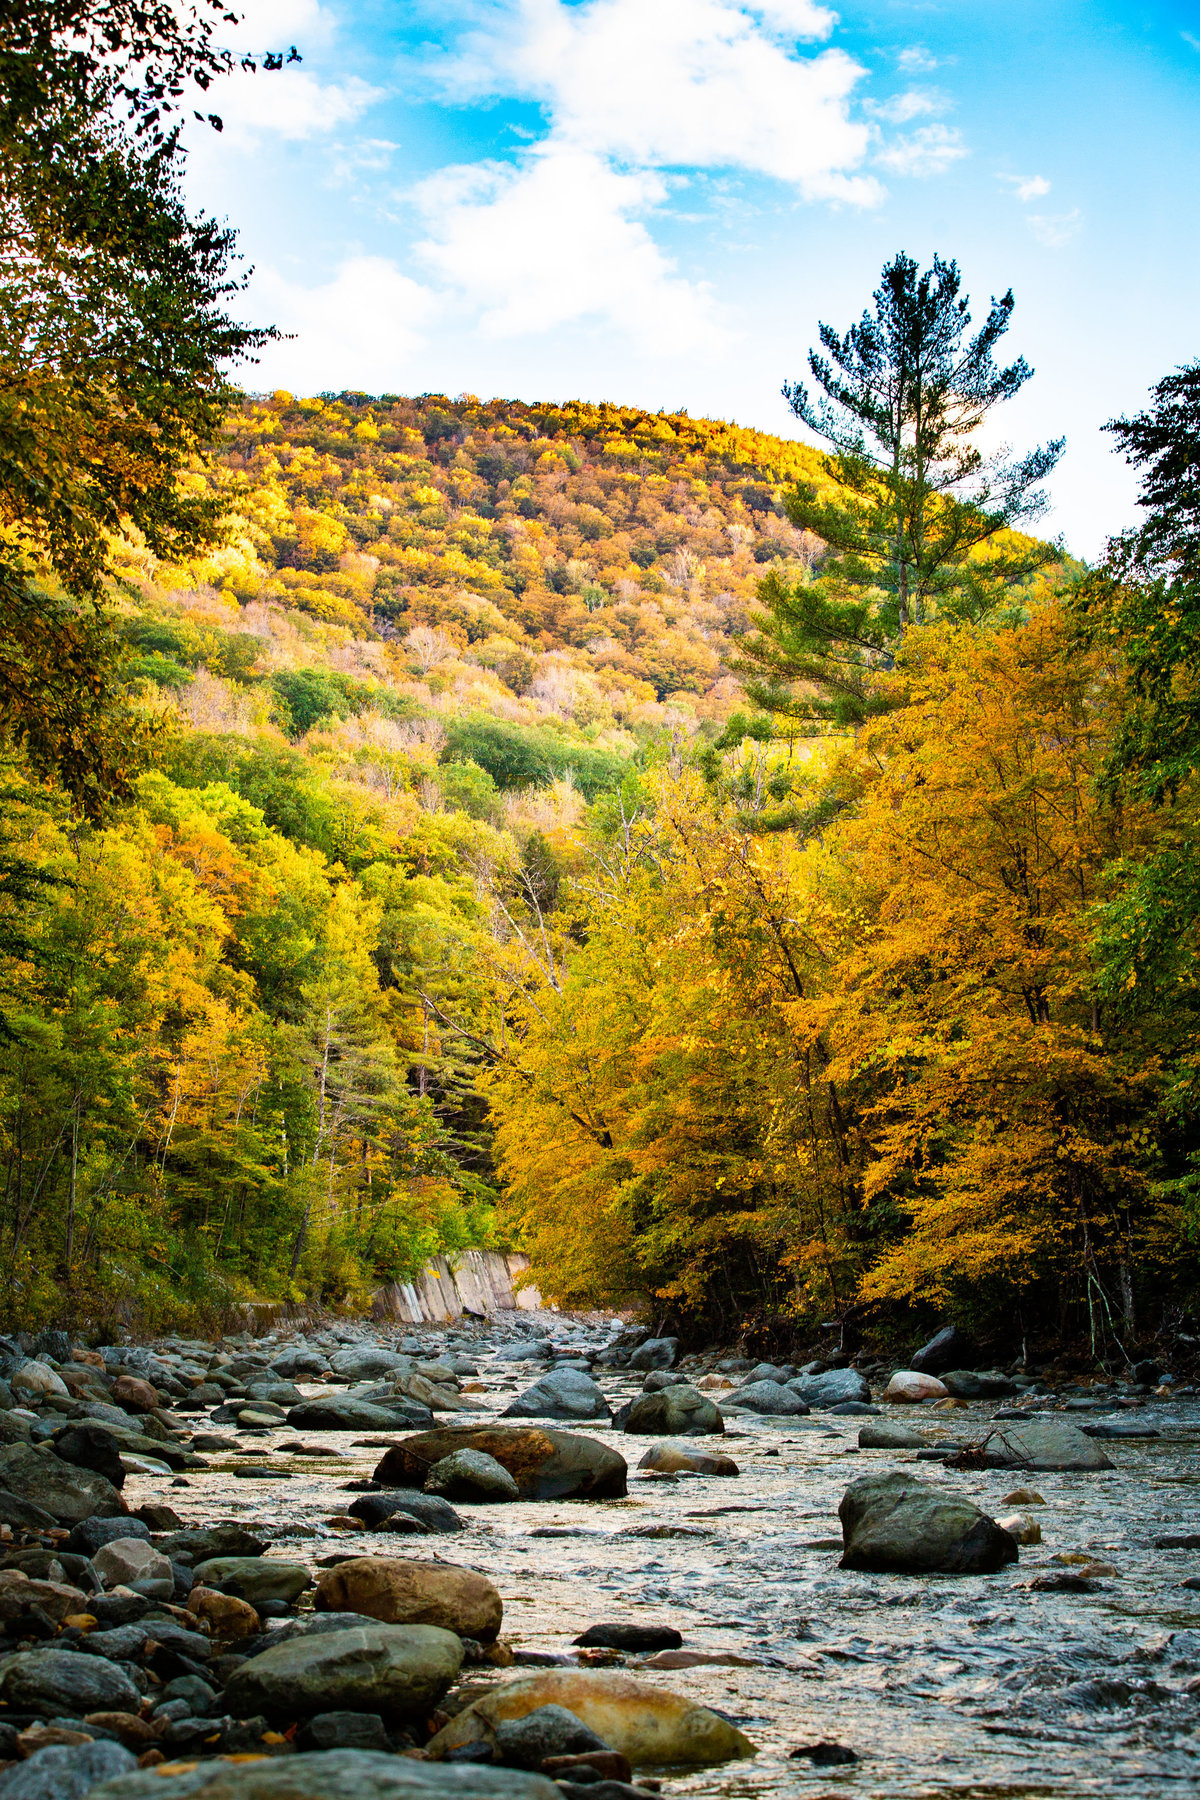 Hall-Potvin Photography Vermont Fall Landscape Photographer-11